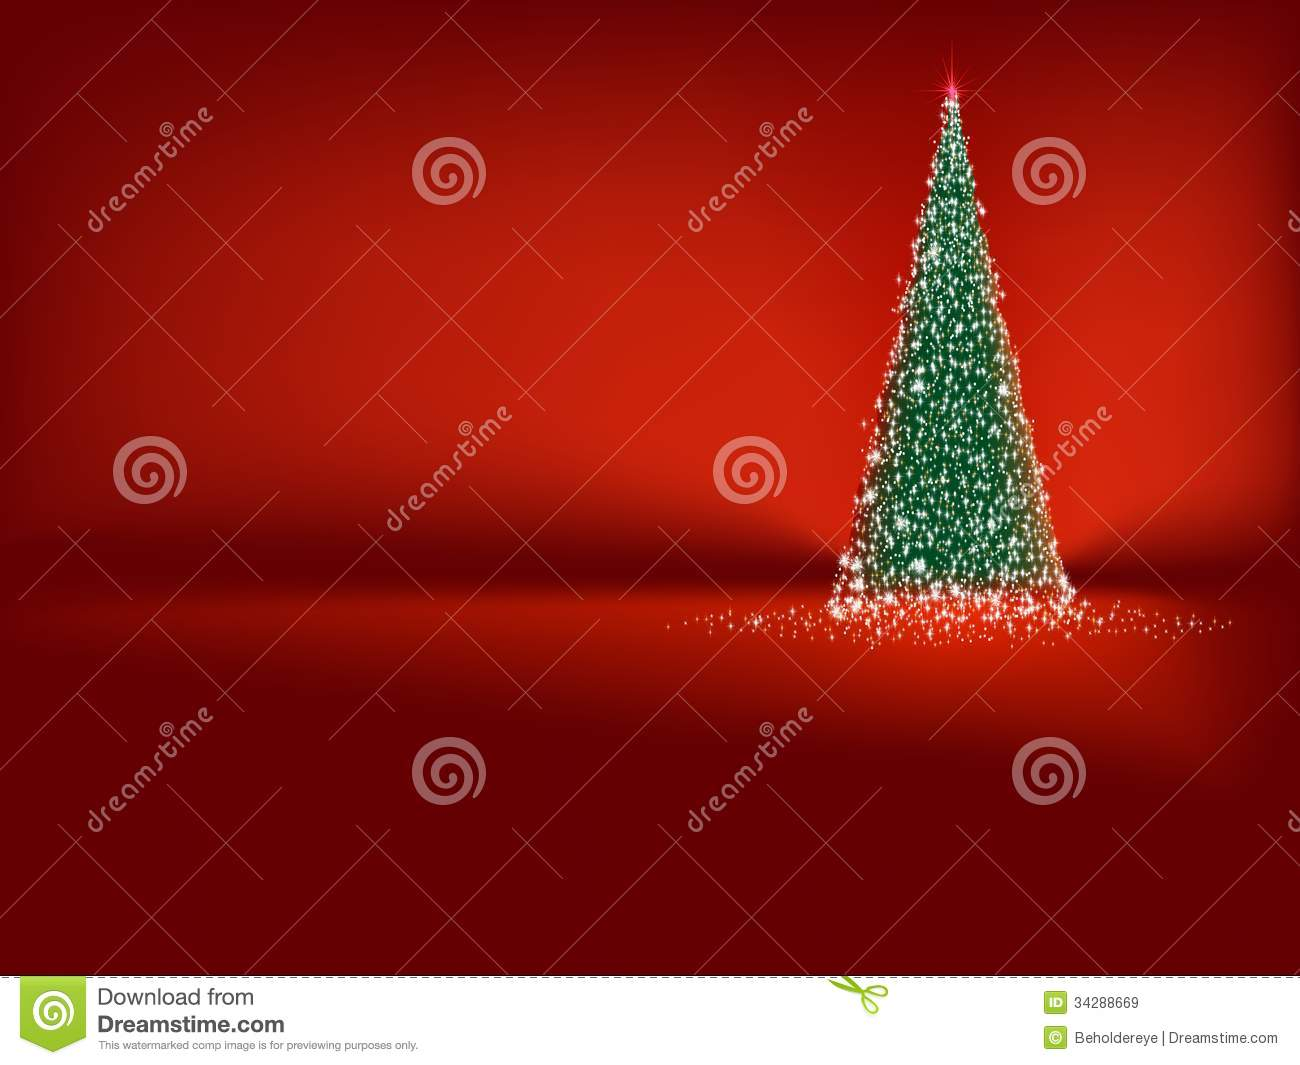 Red and green christmas tree stock image cartoondealer for Red green christmas tree